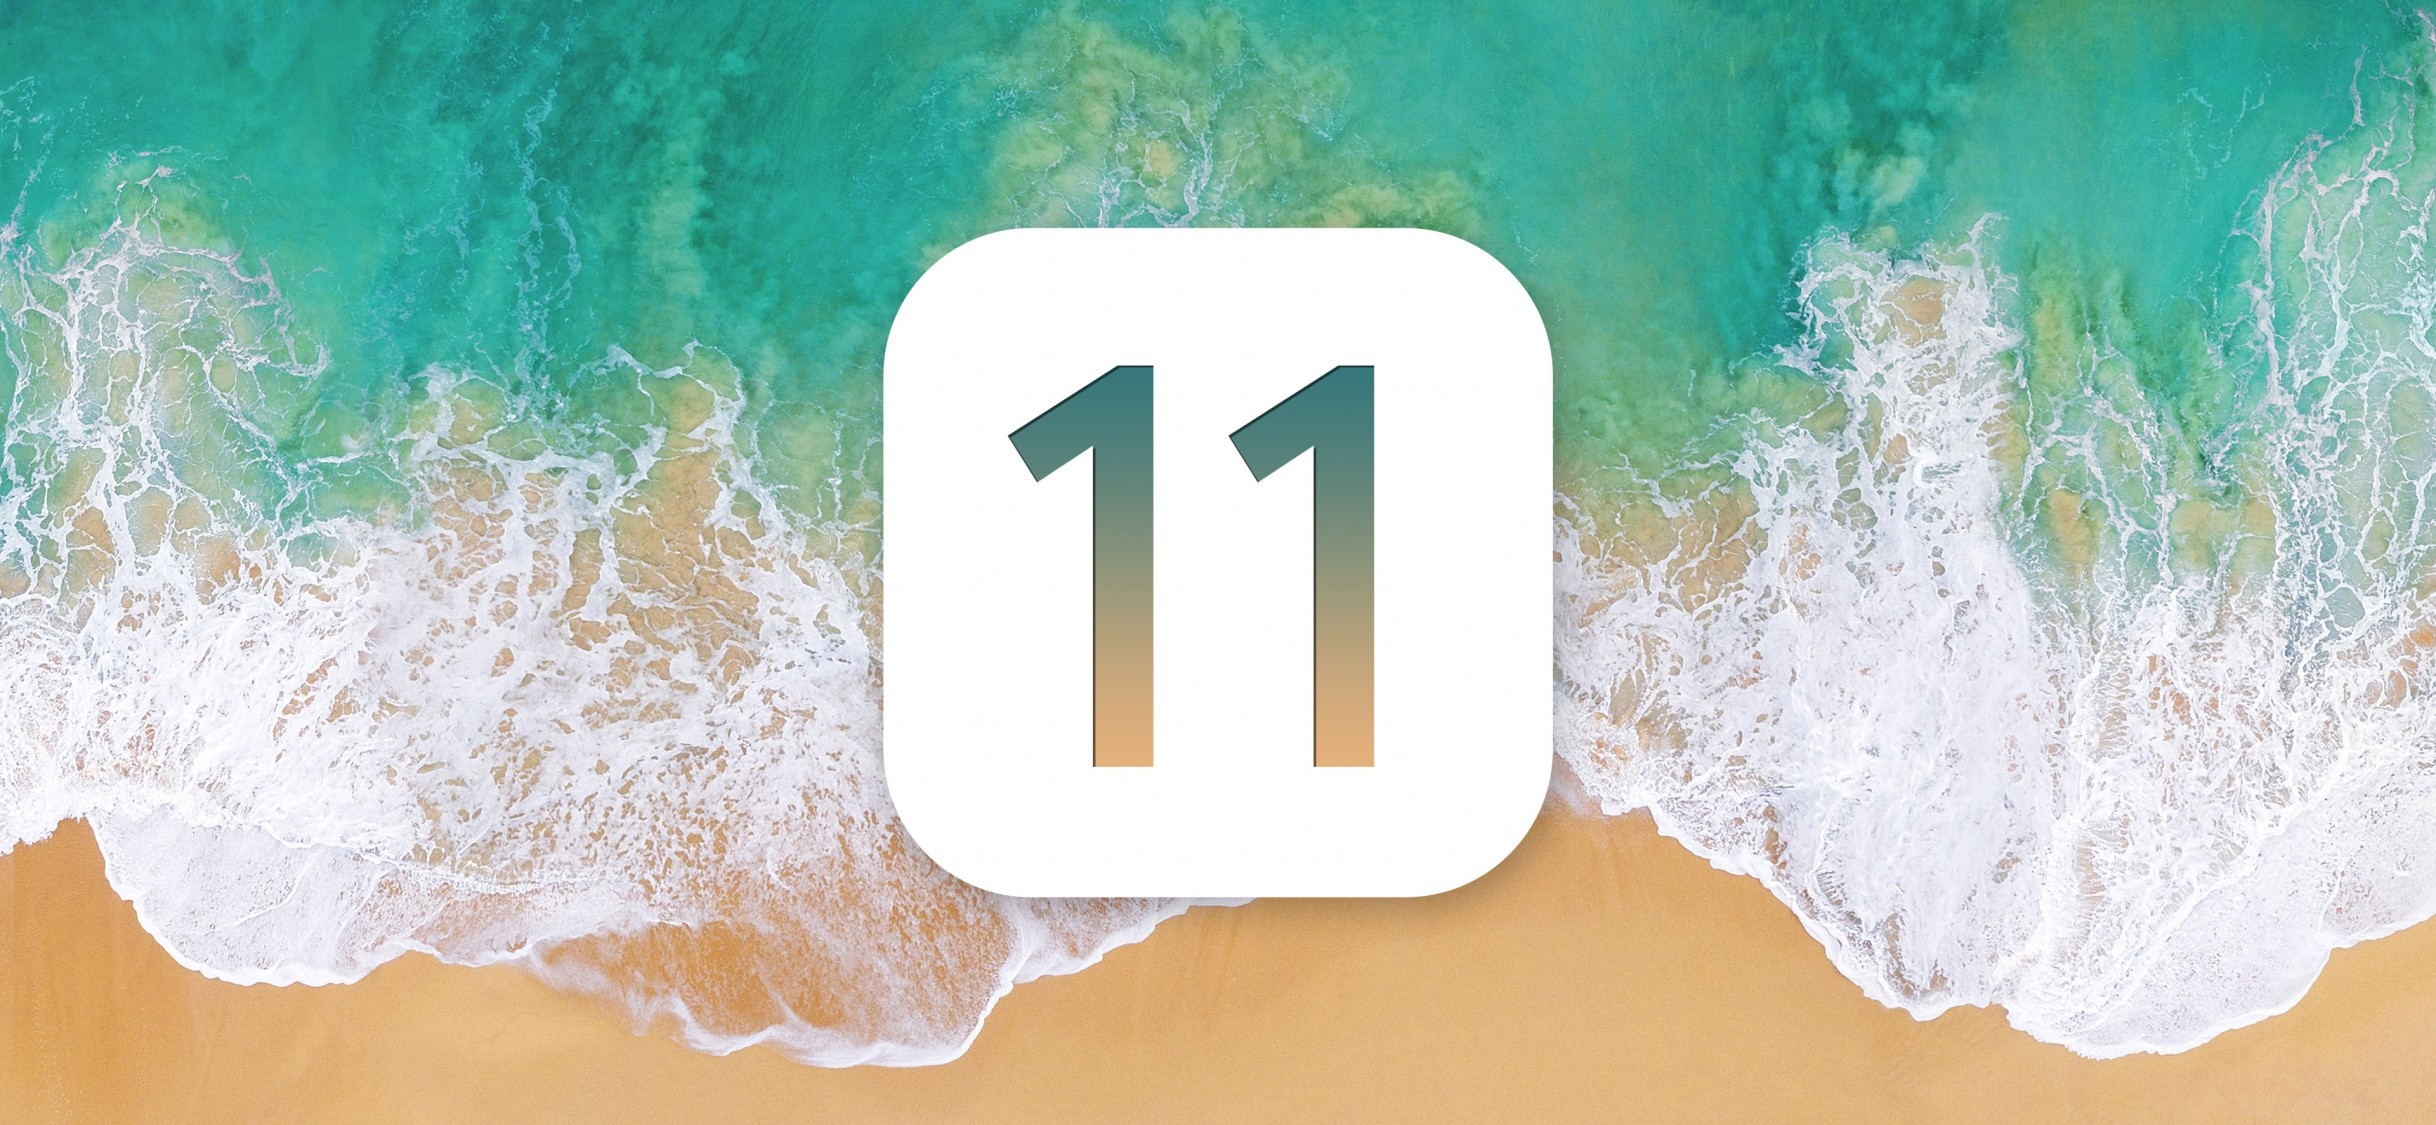 Download Free The New Ios 11 Iphone Hd Wallpaper For Desktop